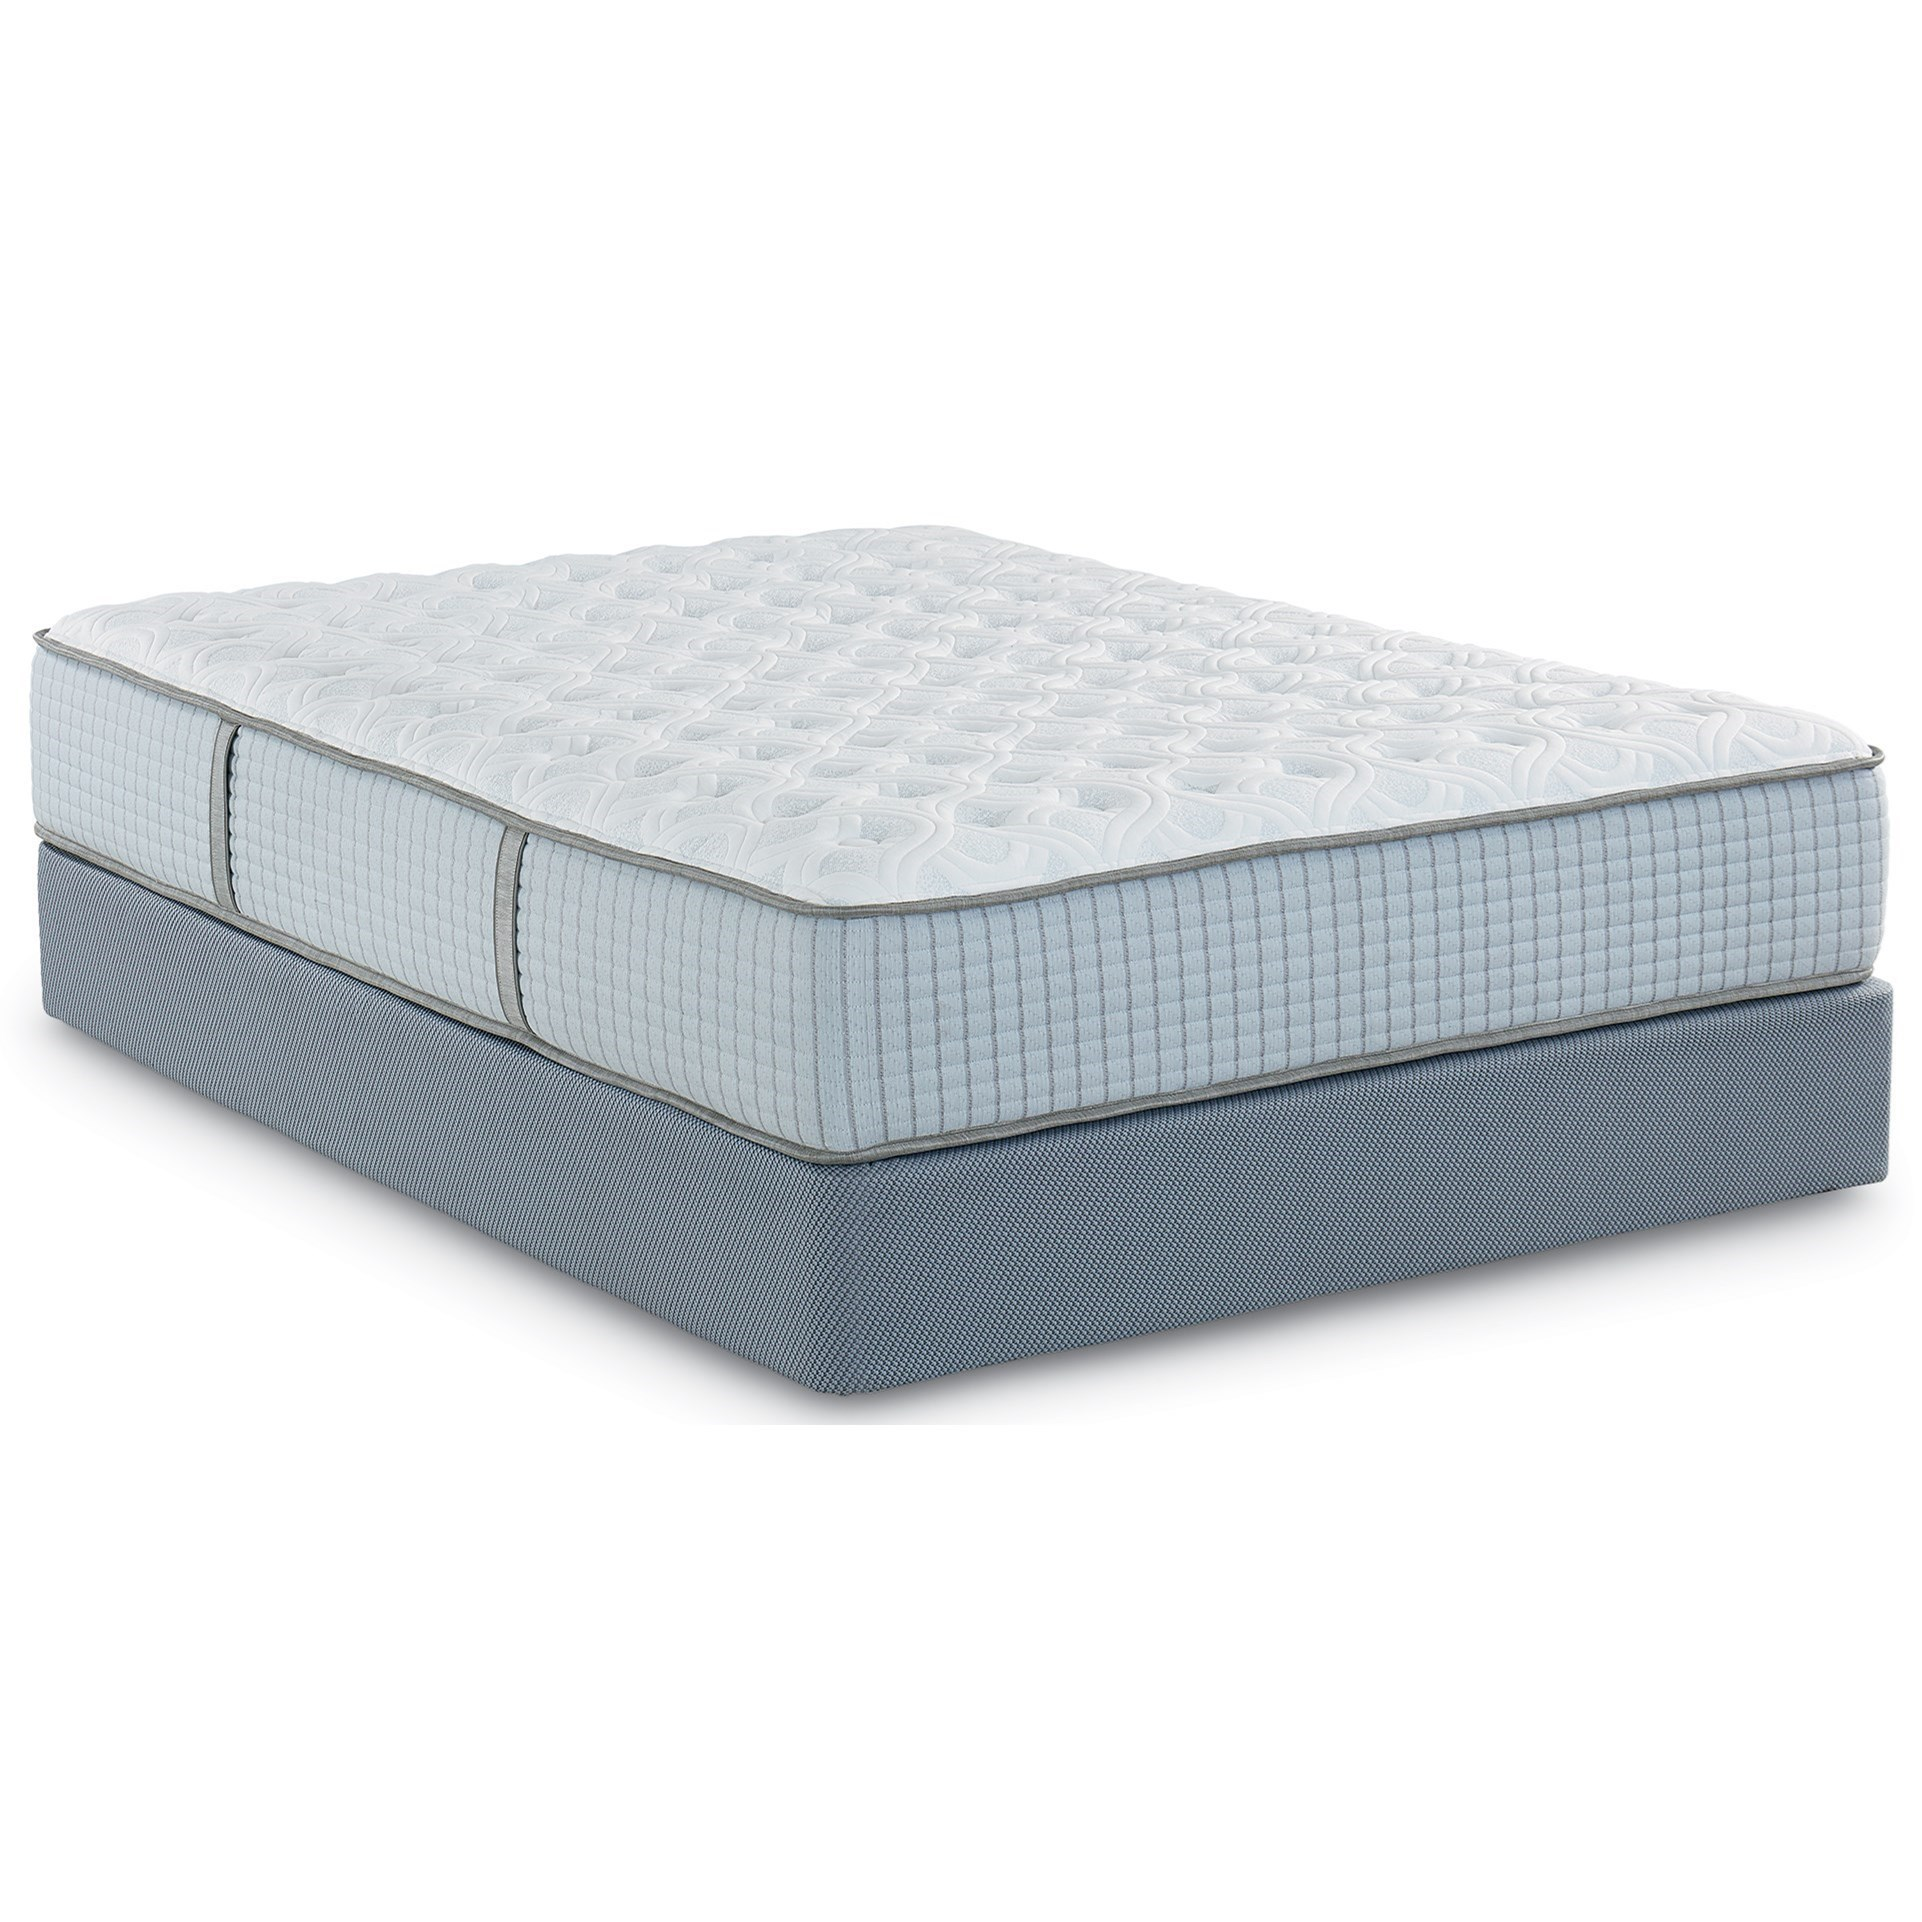 """Queen 2-Sided Luxury Firm / Luxury Plush Pocketed Coil Mattress and 9"""" Premium Wood Foundation"""